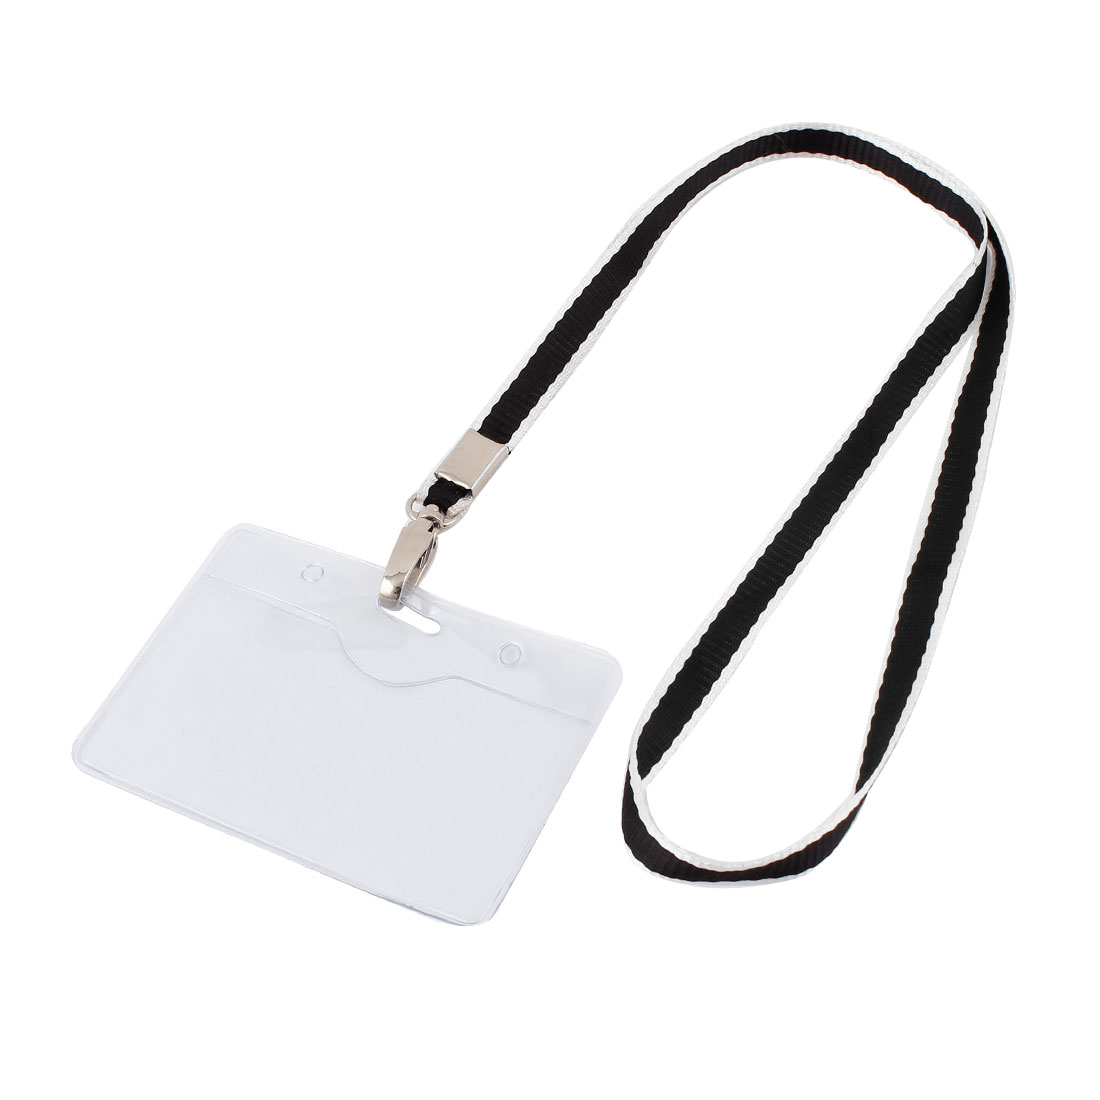 Plastic Horizontal Lanyard Company Position Exhibition Badge Card Holder Black